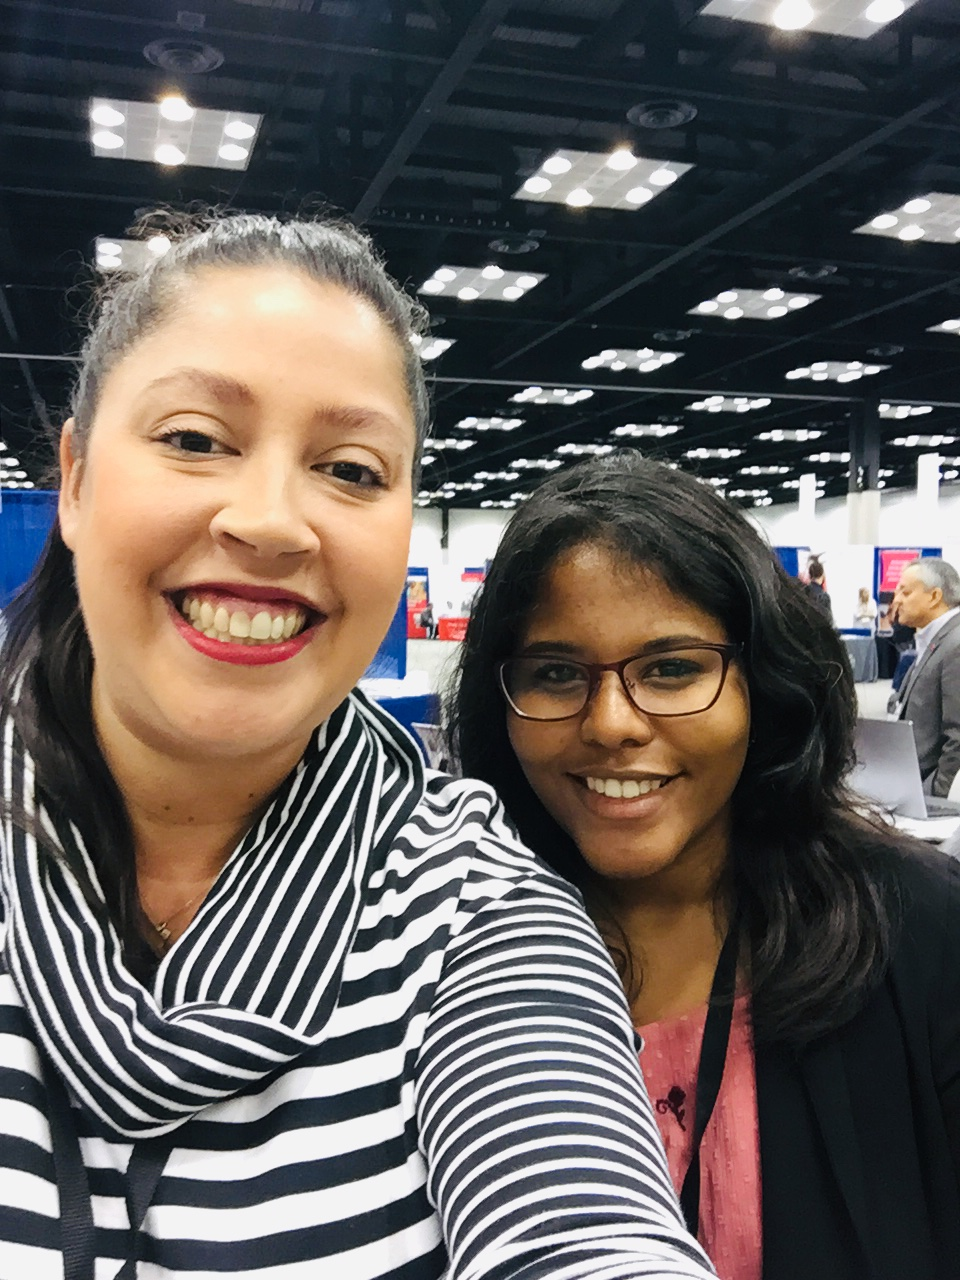 Catching up with Natalia at ABRCMS